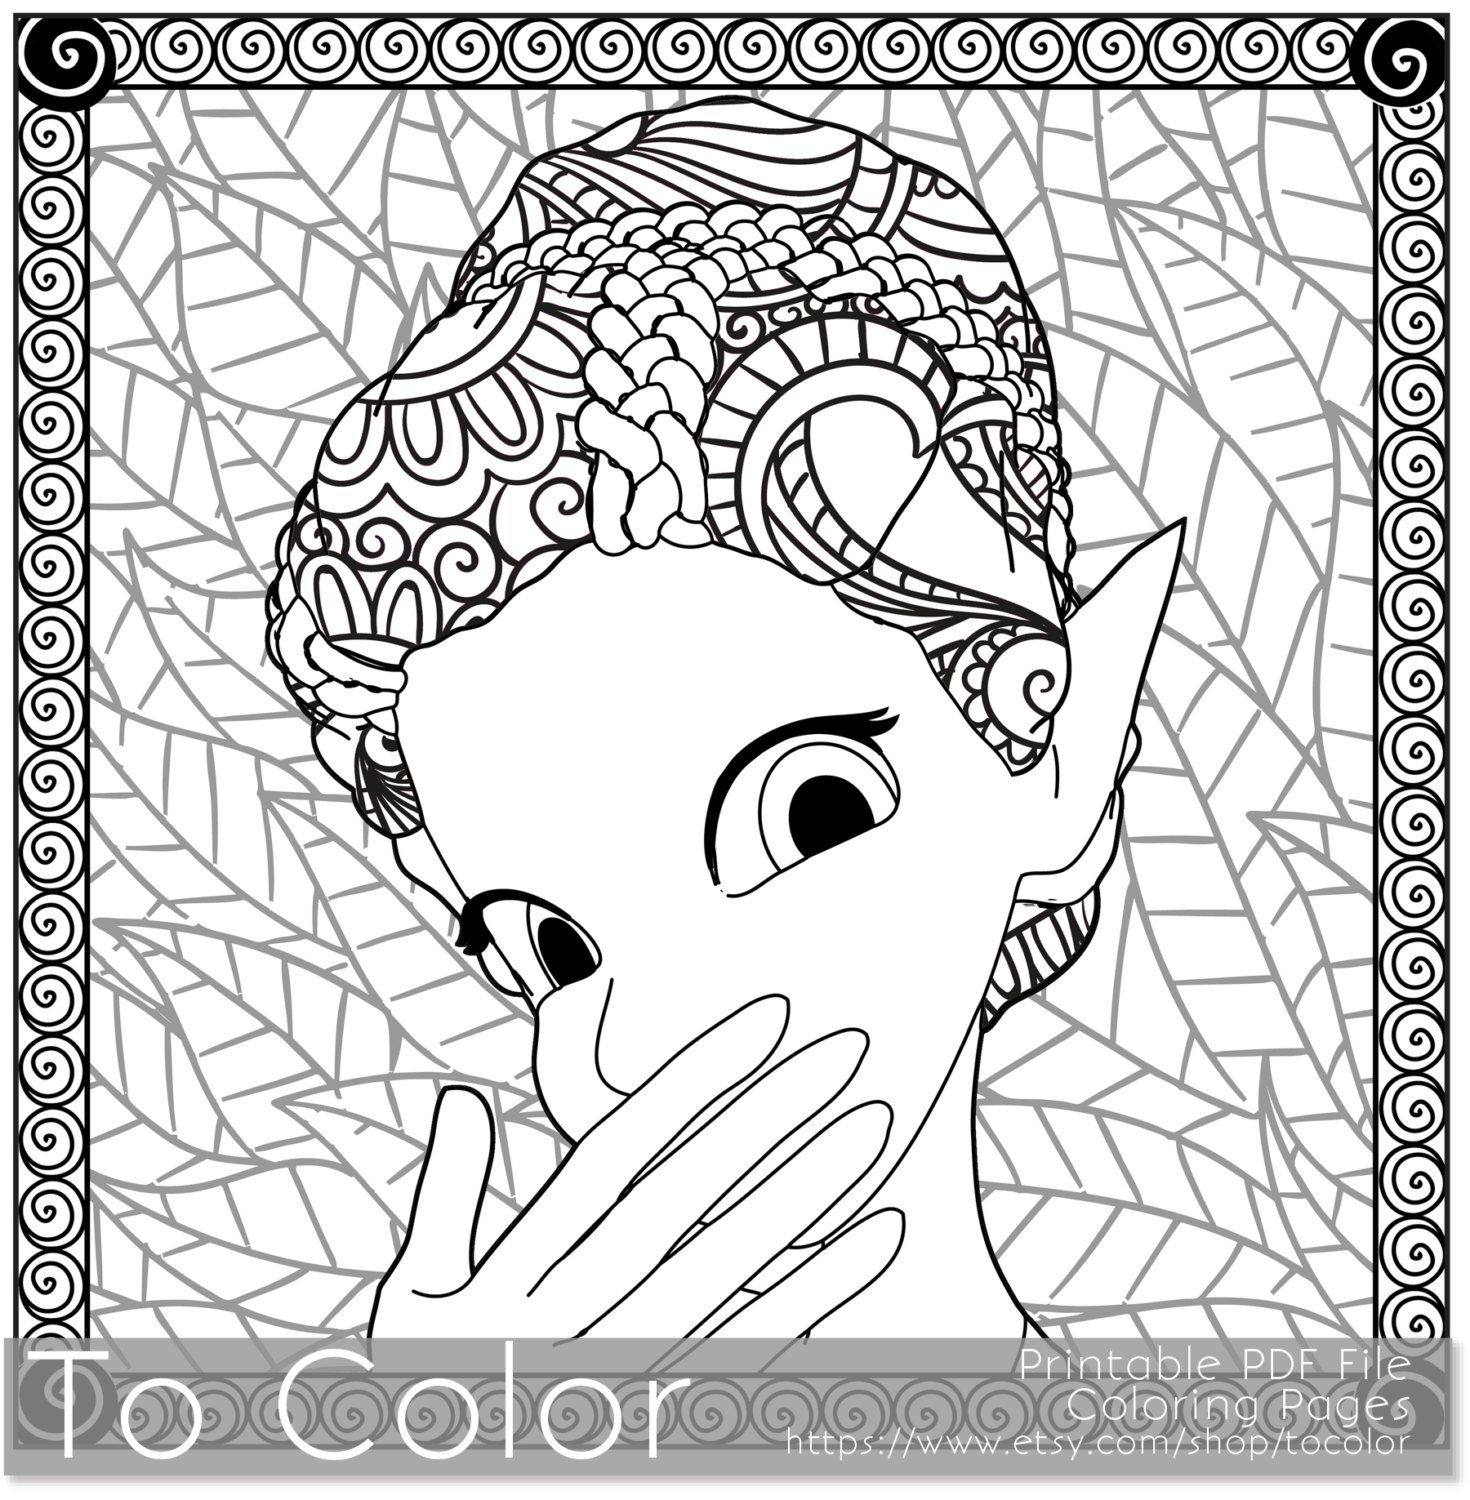 Retro Girl Pixie Fairy Printable Coloring Pages For Adults Fantasy PDF JPG